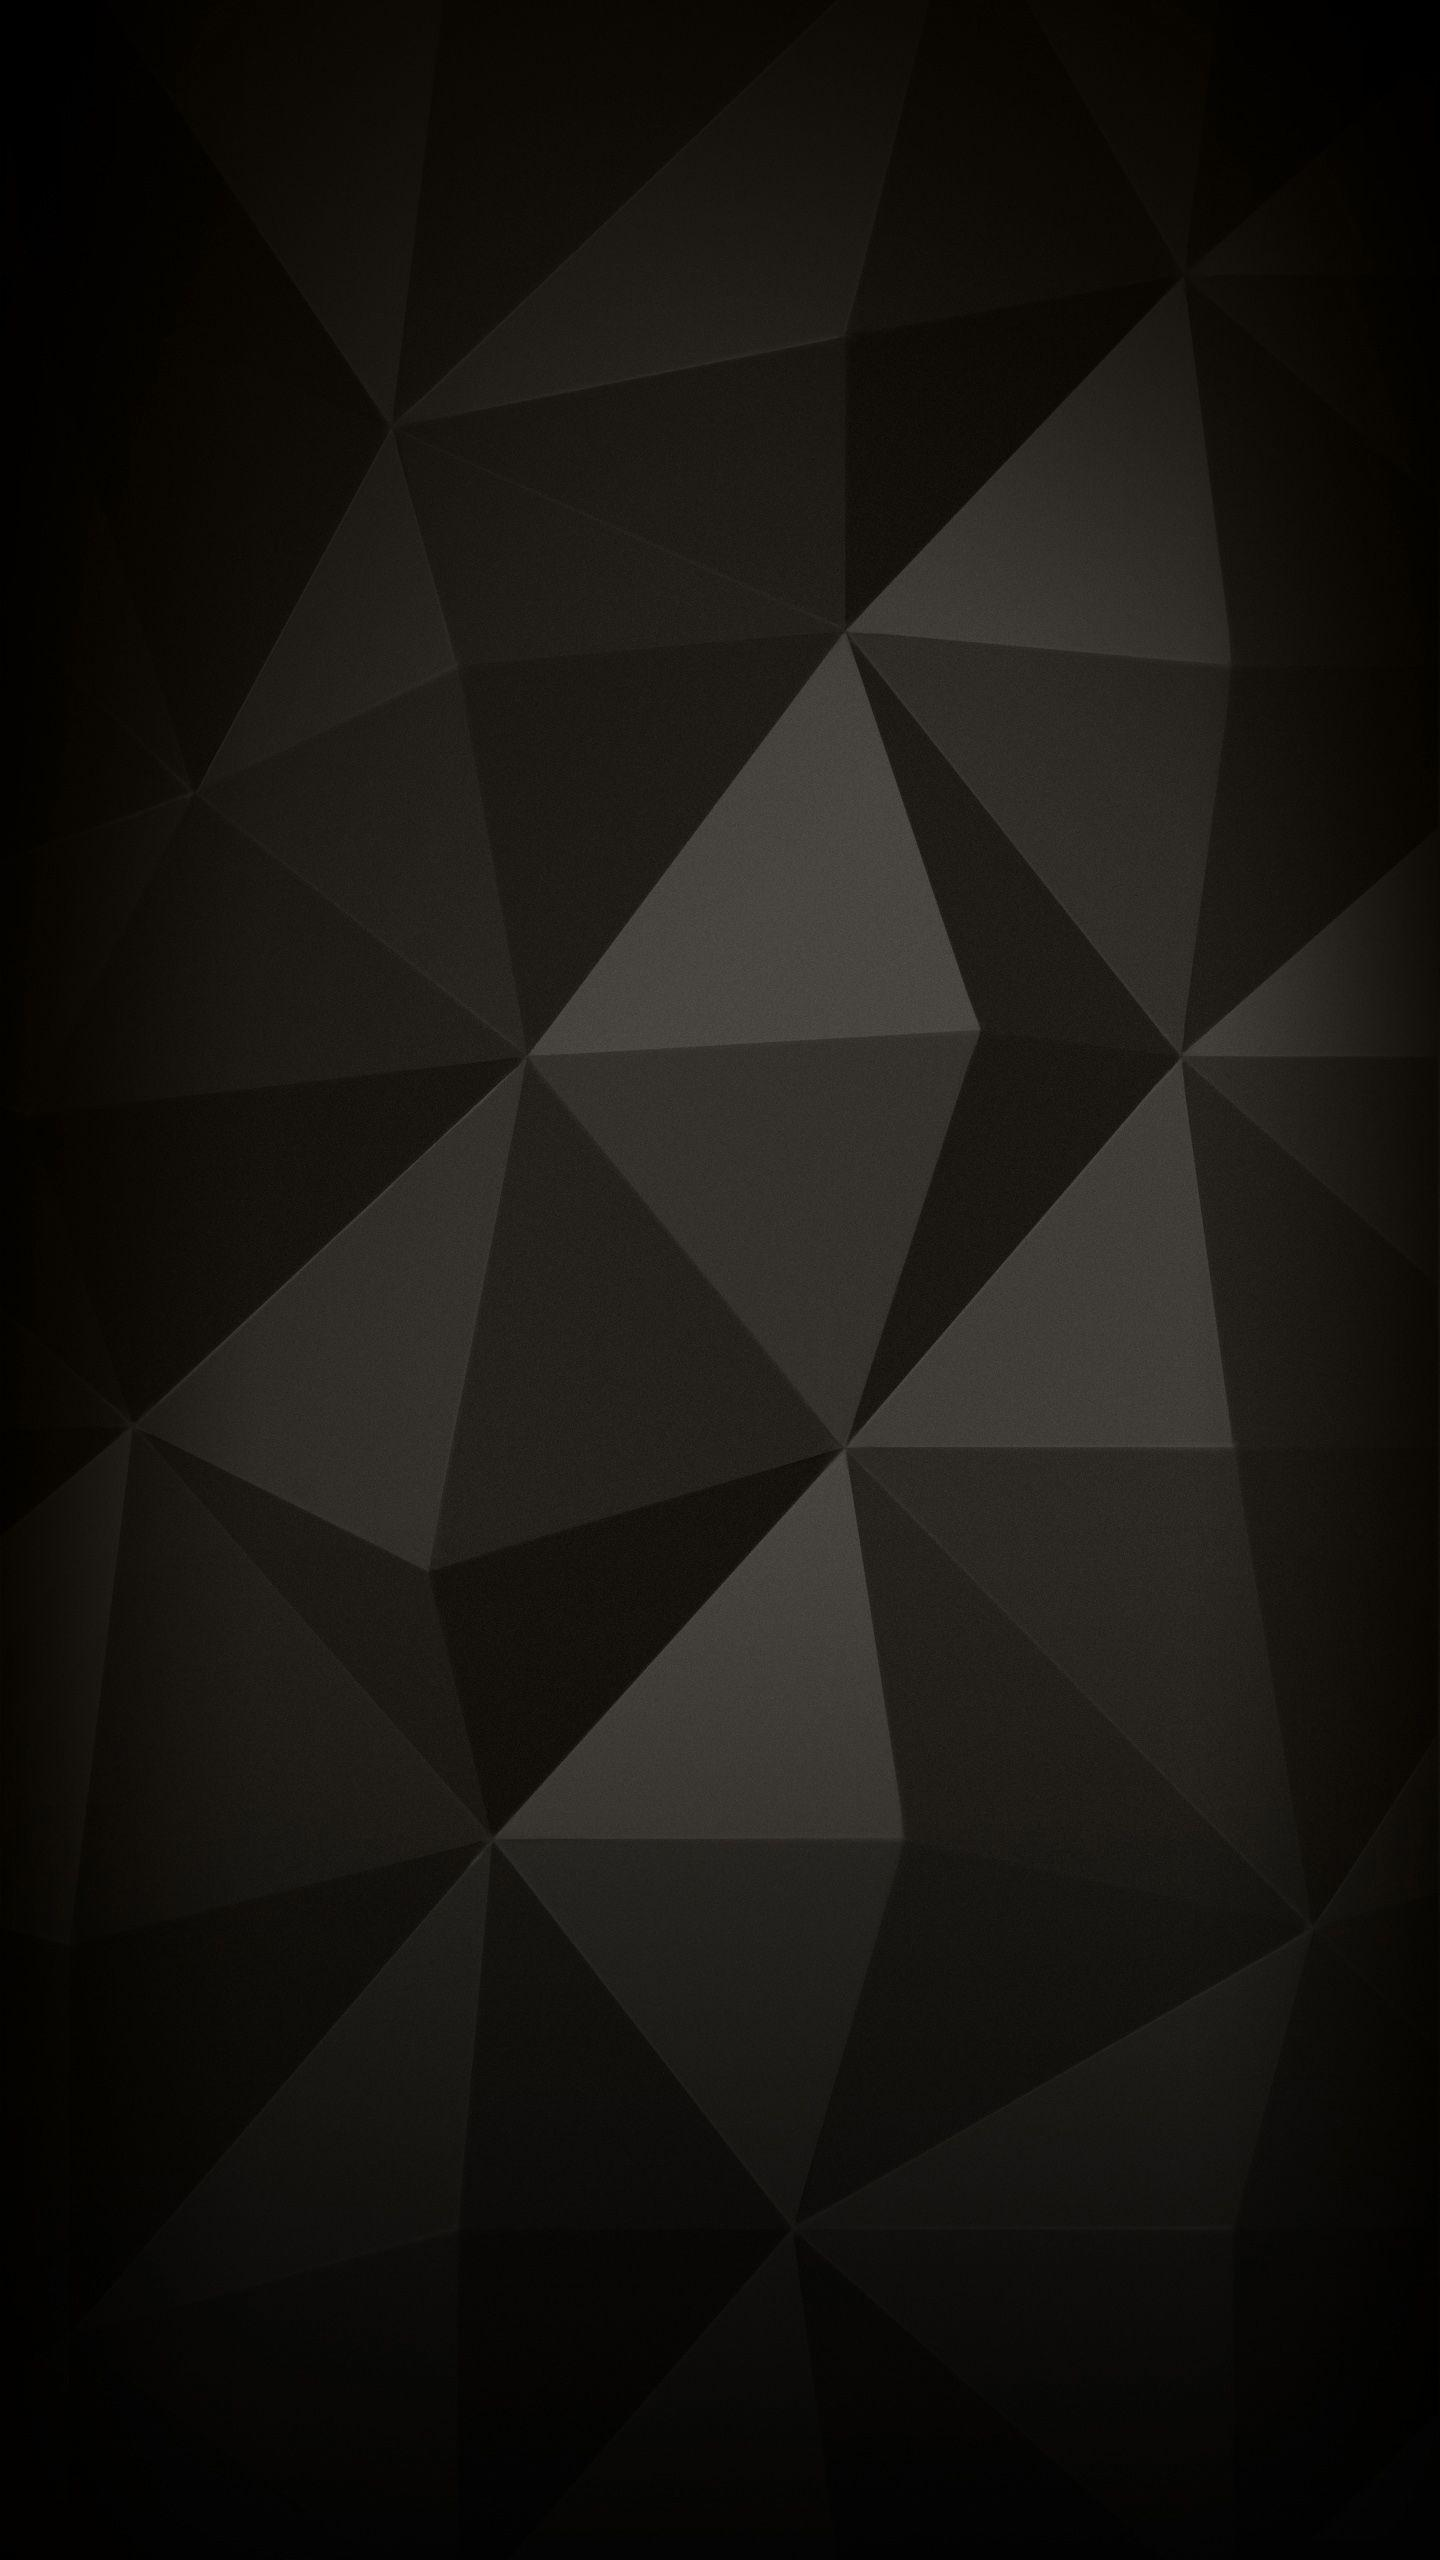 Abstract Phone Wallpapers Wallpaper Cave